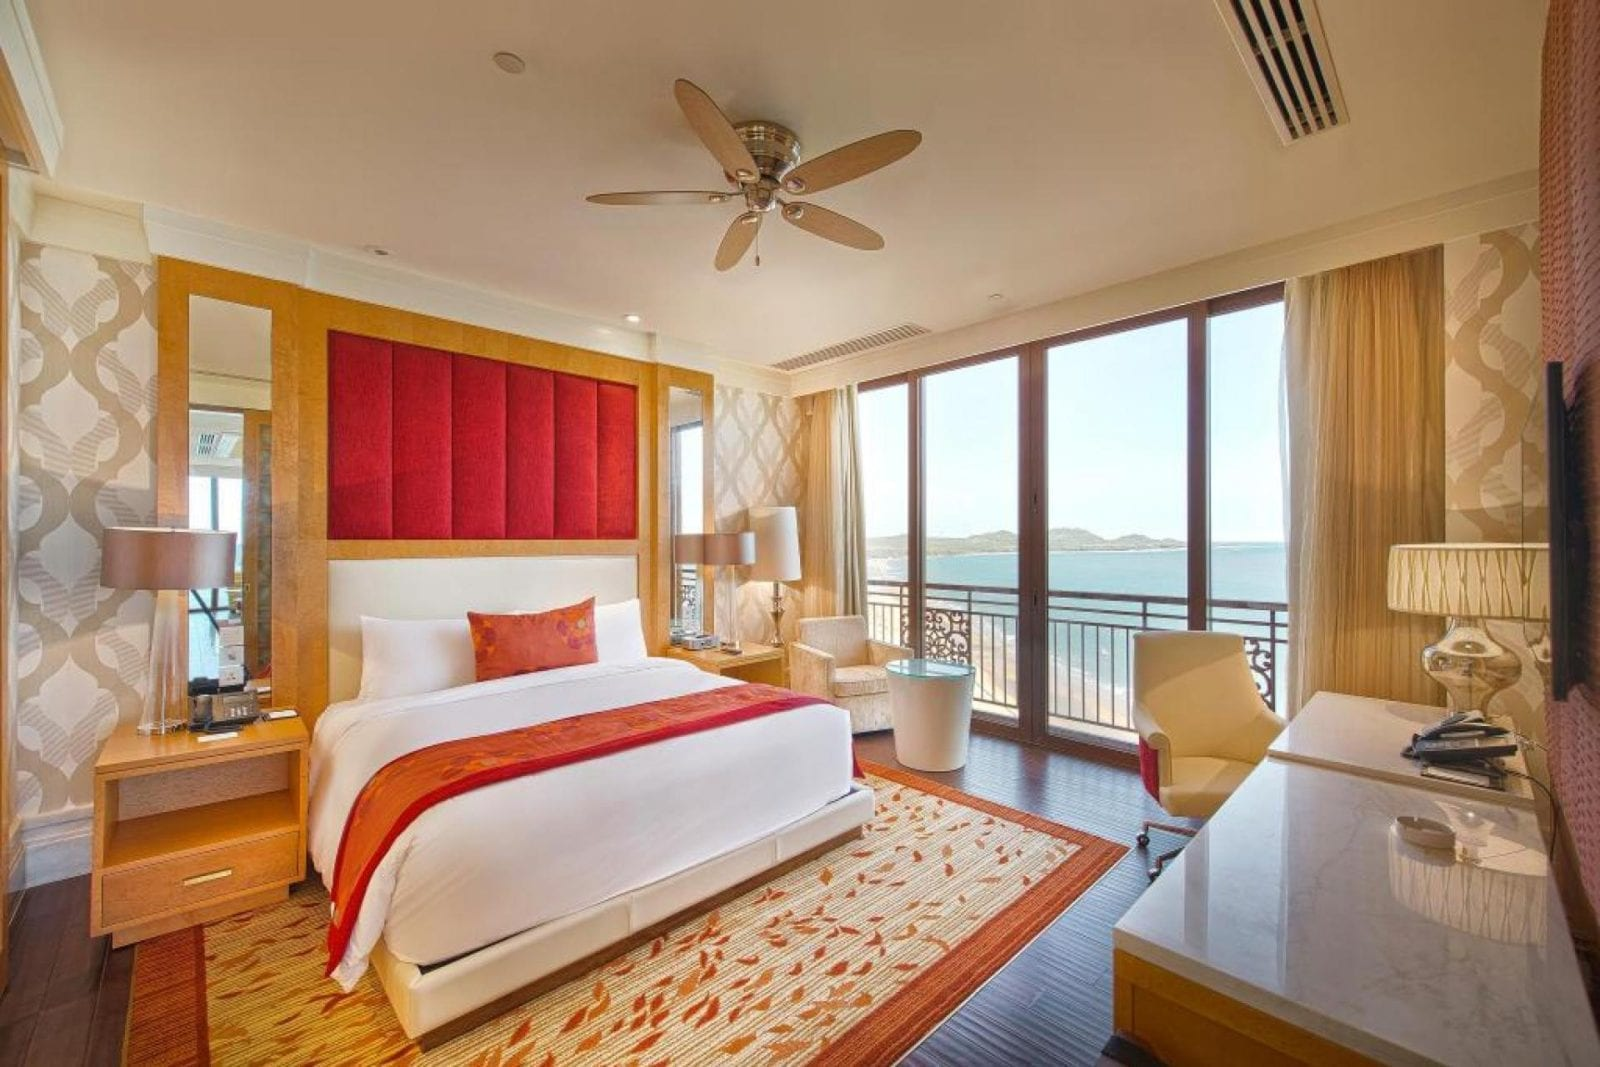 Room at The Grand Hồ Tràm Strip